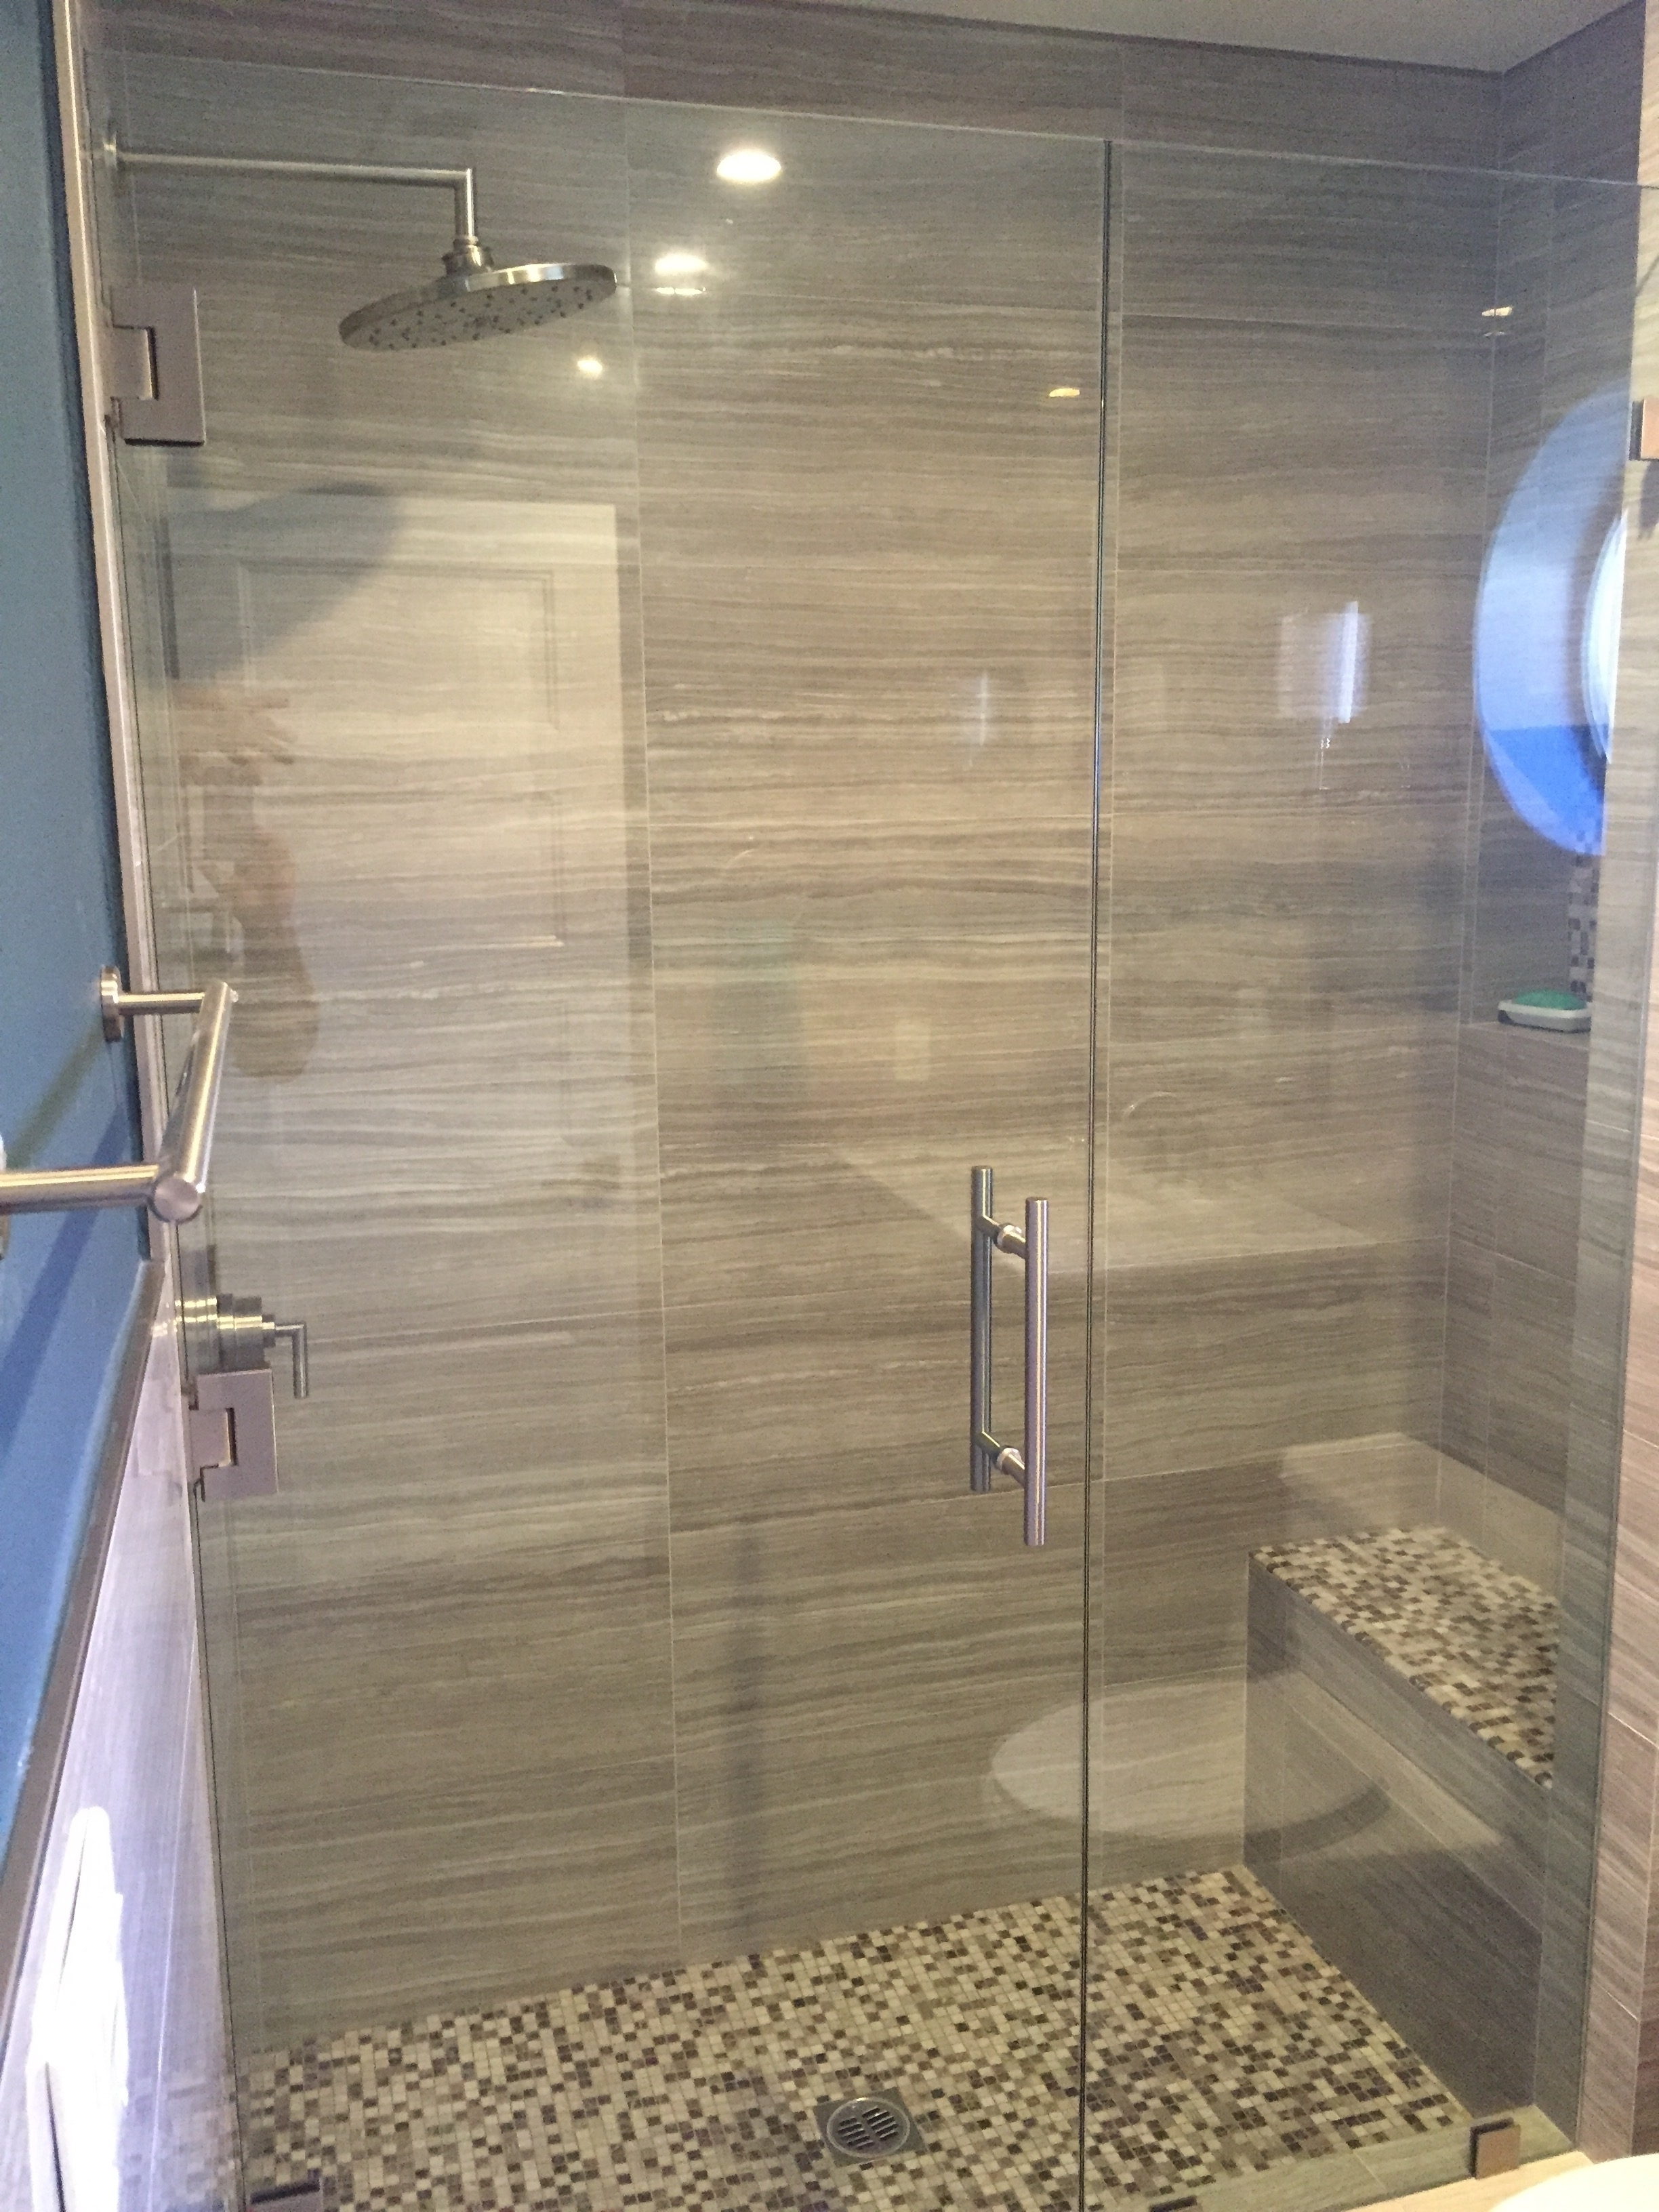 Bathrooms remodel simi valley general contractor jb jones for J b bathrooms wimborne